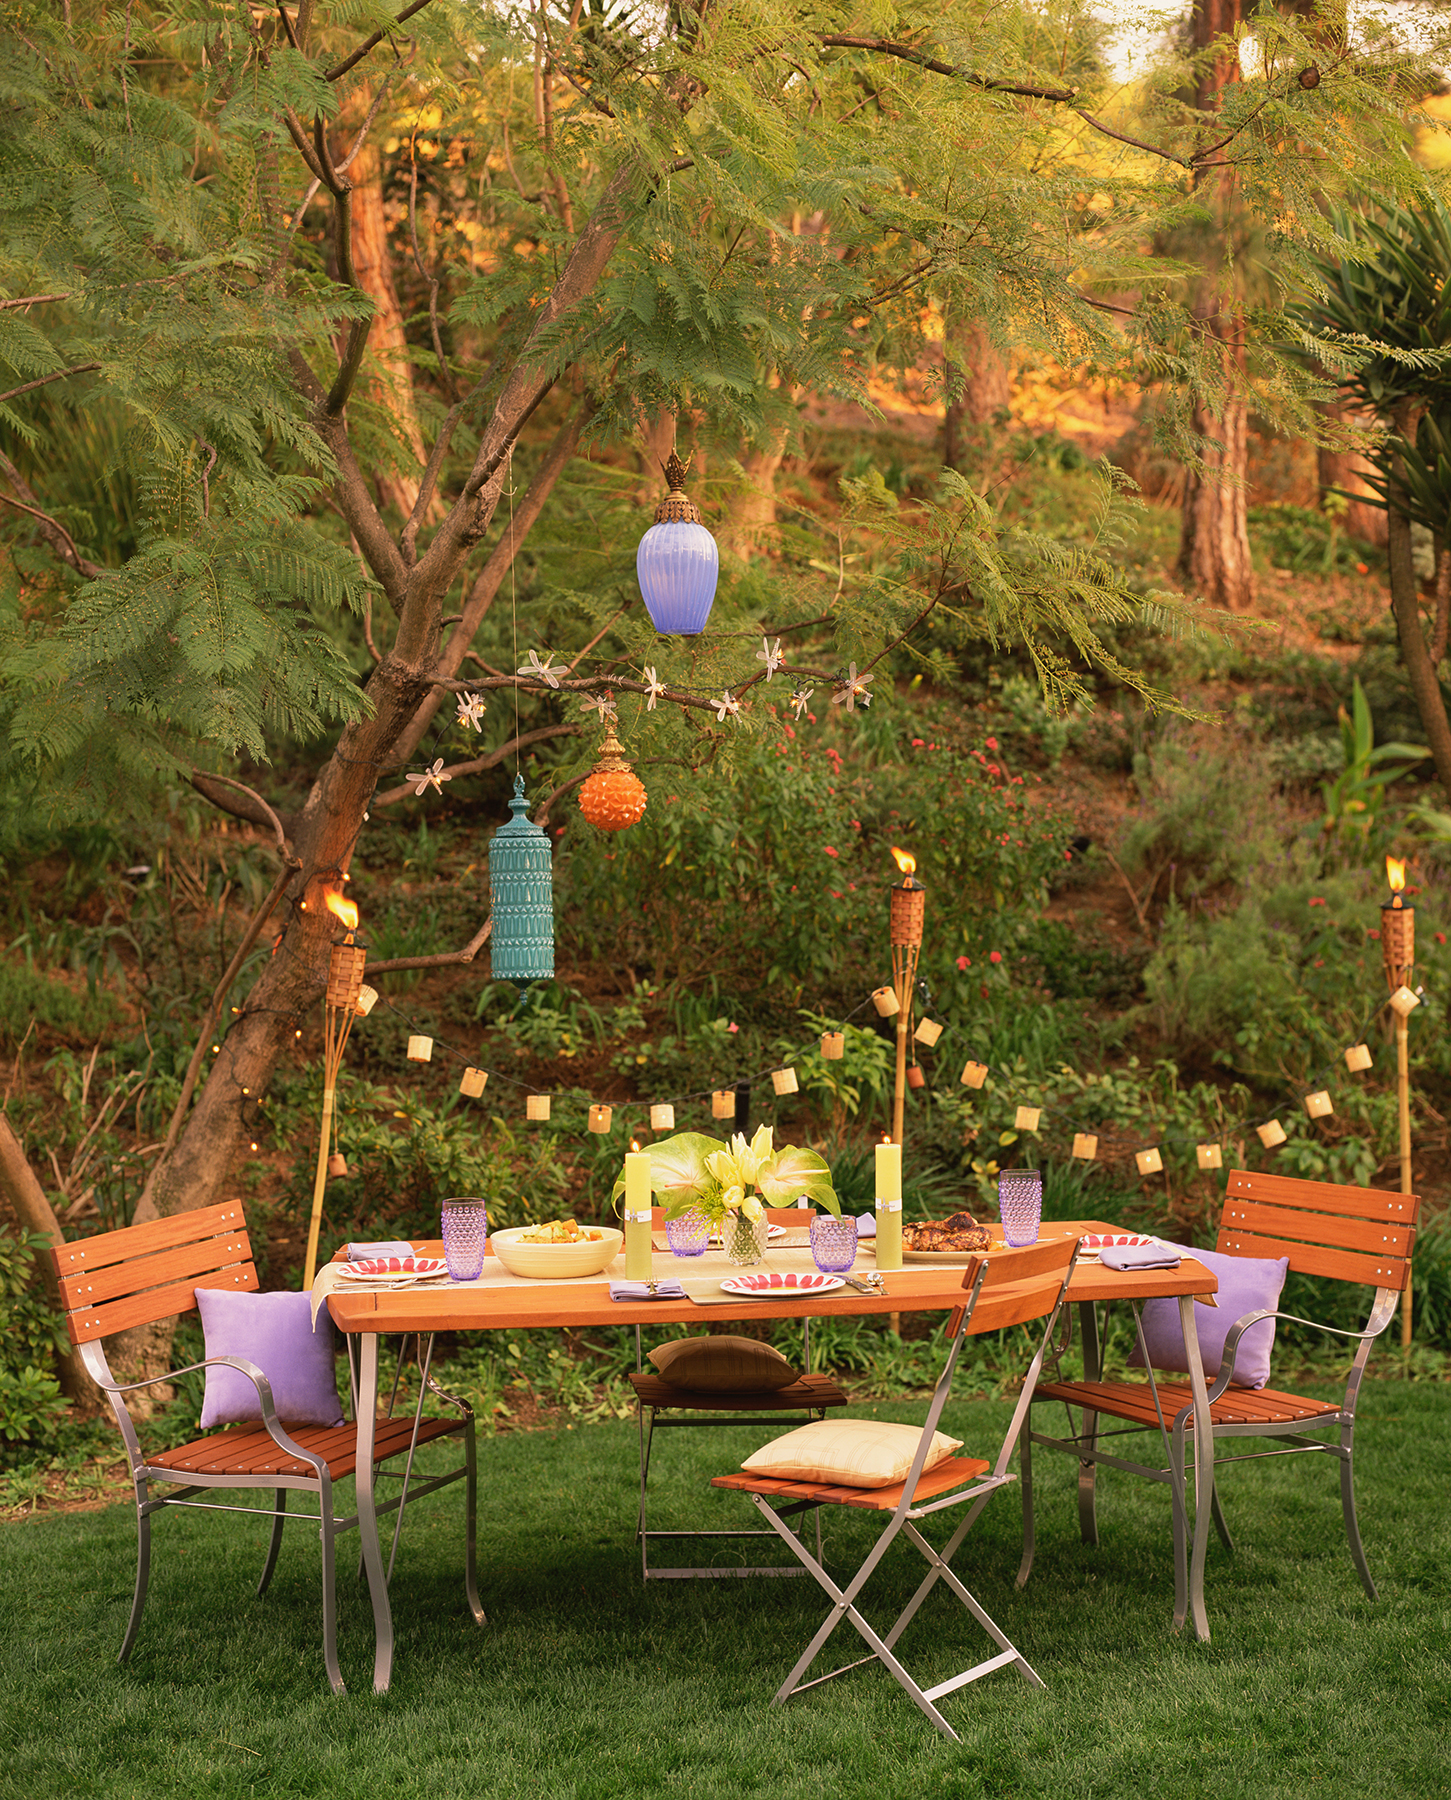 17 Genius Tips and Ideas for an Effortless Outdoor Party on backyard carnival party ideas, backyard deck party ideas, backyard beach house ideas, indoor carnival party ideas, backyard farm party ideas, backyard dinner party ideas, backyard engagement party ideas, backyard party lighting ideas, backyard pirate ideas, backyard beach landscaping, backyard party game ideas, backyard island party ideas, backyard beach decorating, cheap backyard lighting ideas, backyard princess party ideas, backyard soccer ideas, backyard beach parties, backyard bday party ideas, backyard family ideas, backyard thanksgiving ideas,